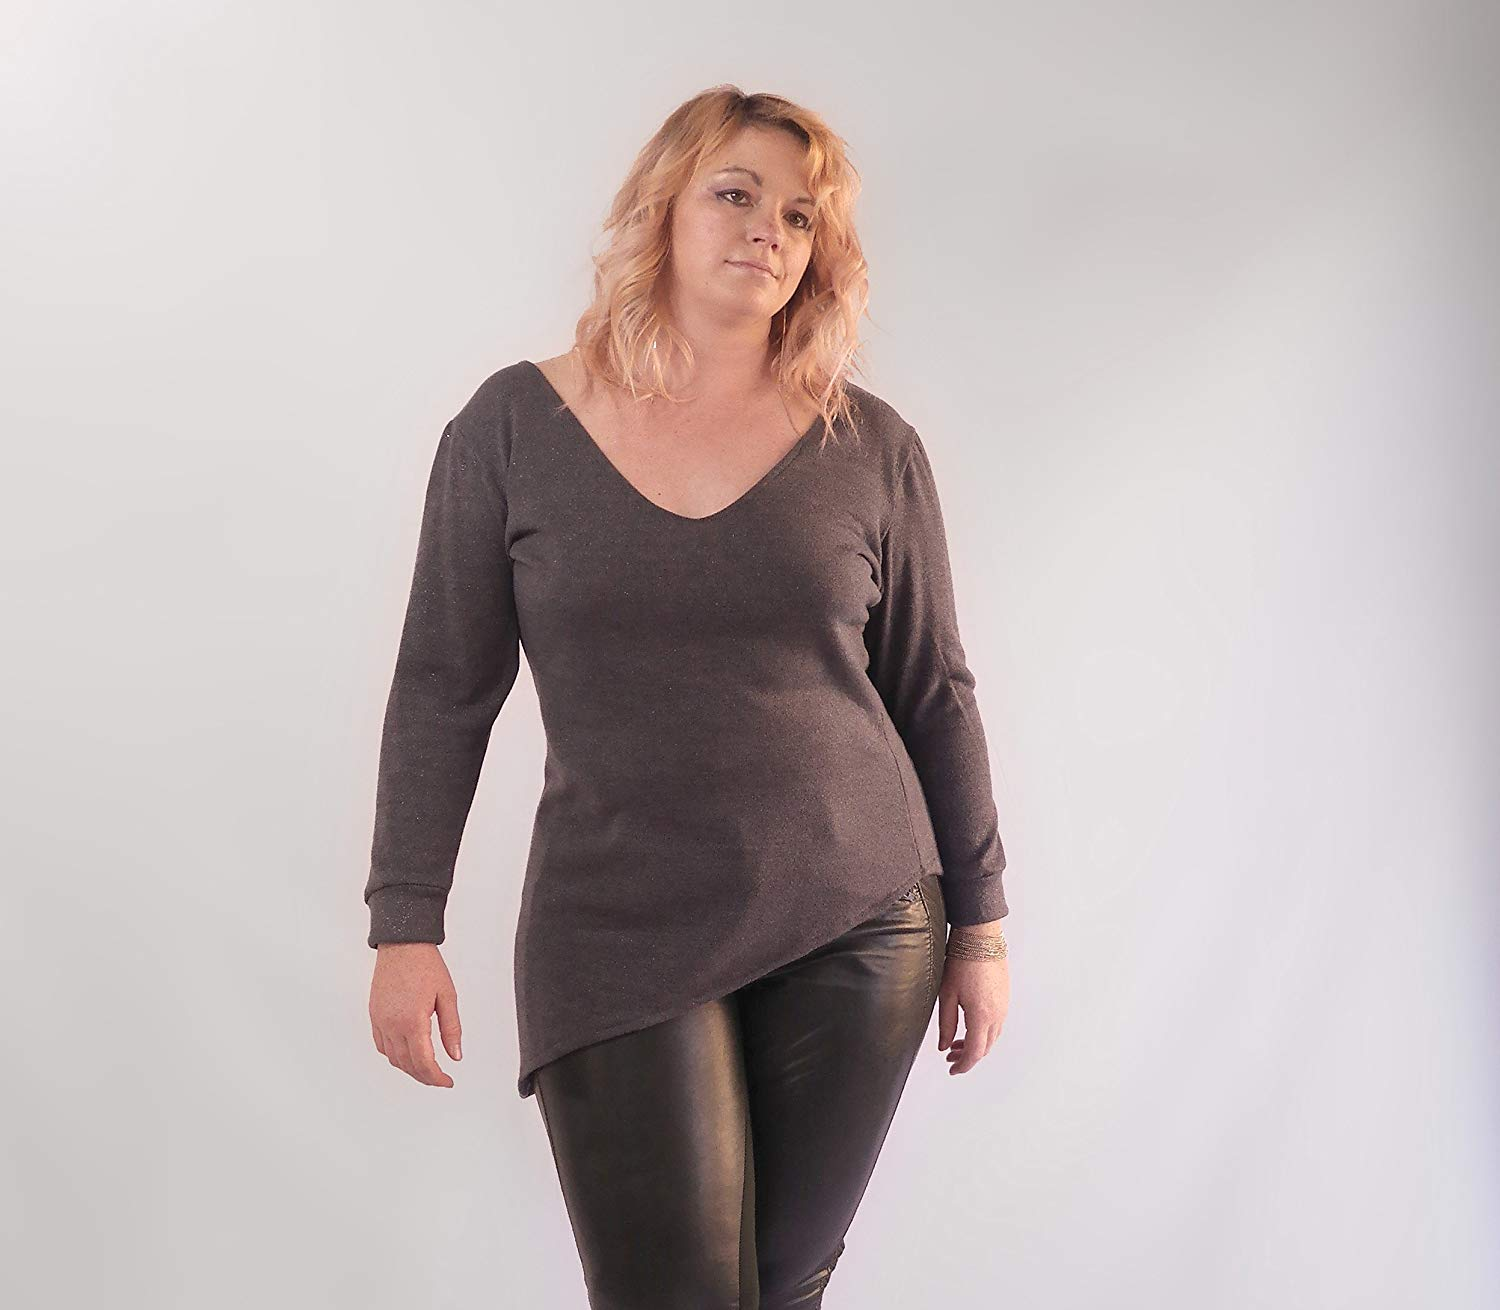 Asymmetric Dark Slate Metallic Tunic Top, Plus Size Knit Top, Dark Grey V-Neck Top, Night Out Top, Sparkly Soft Warm Sweater. Size ML-XL